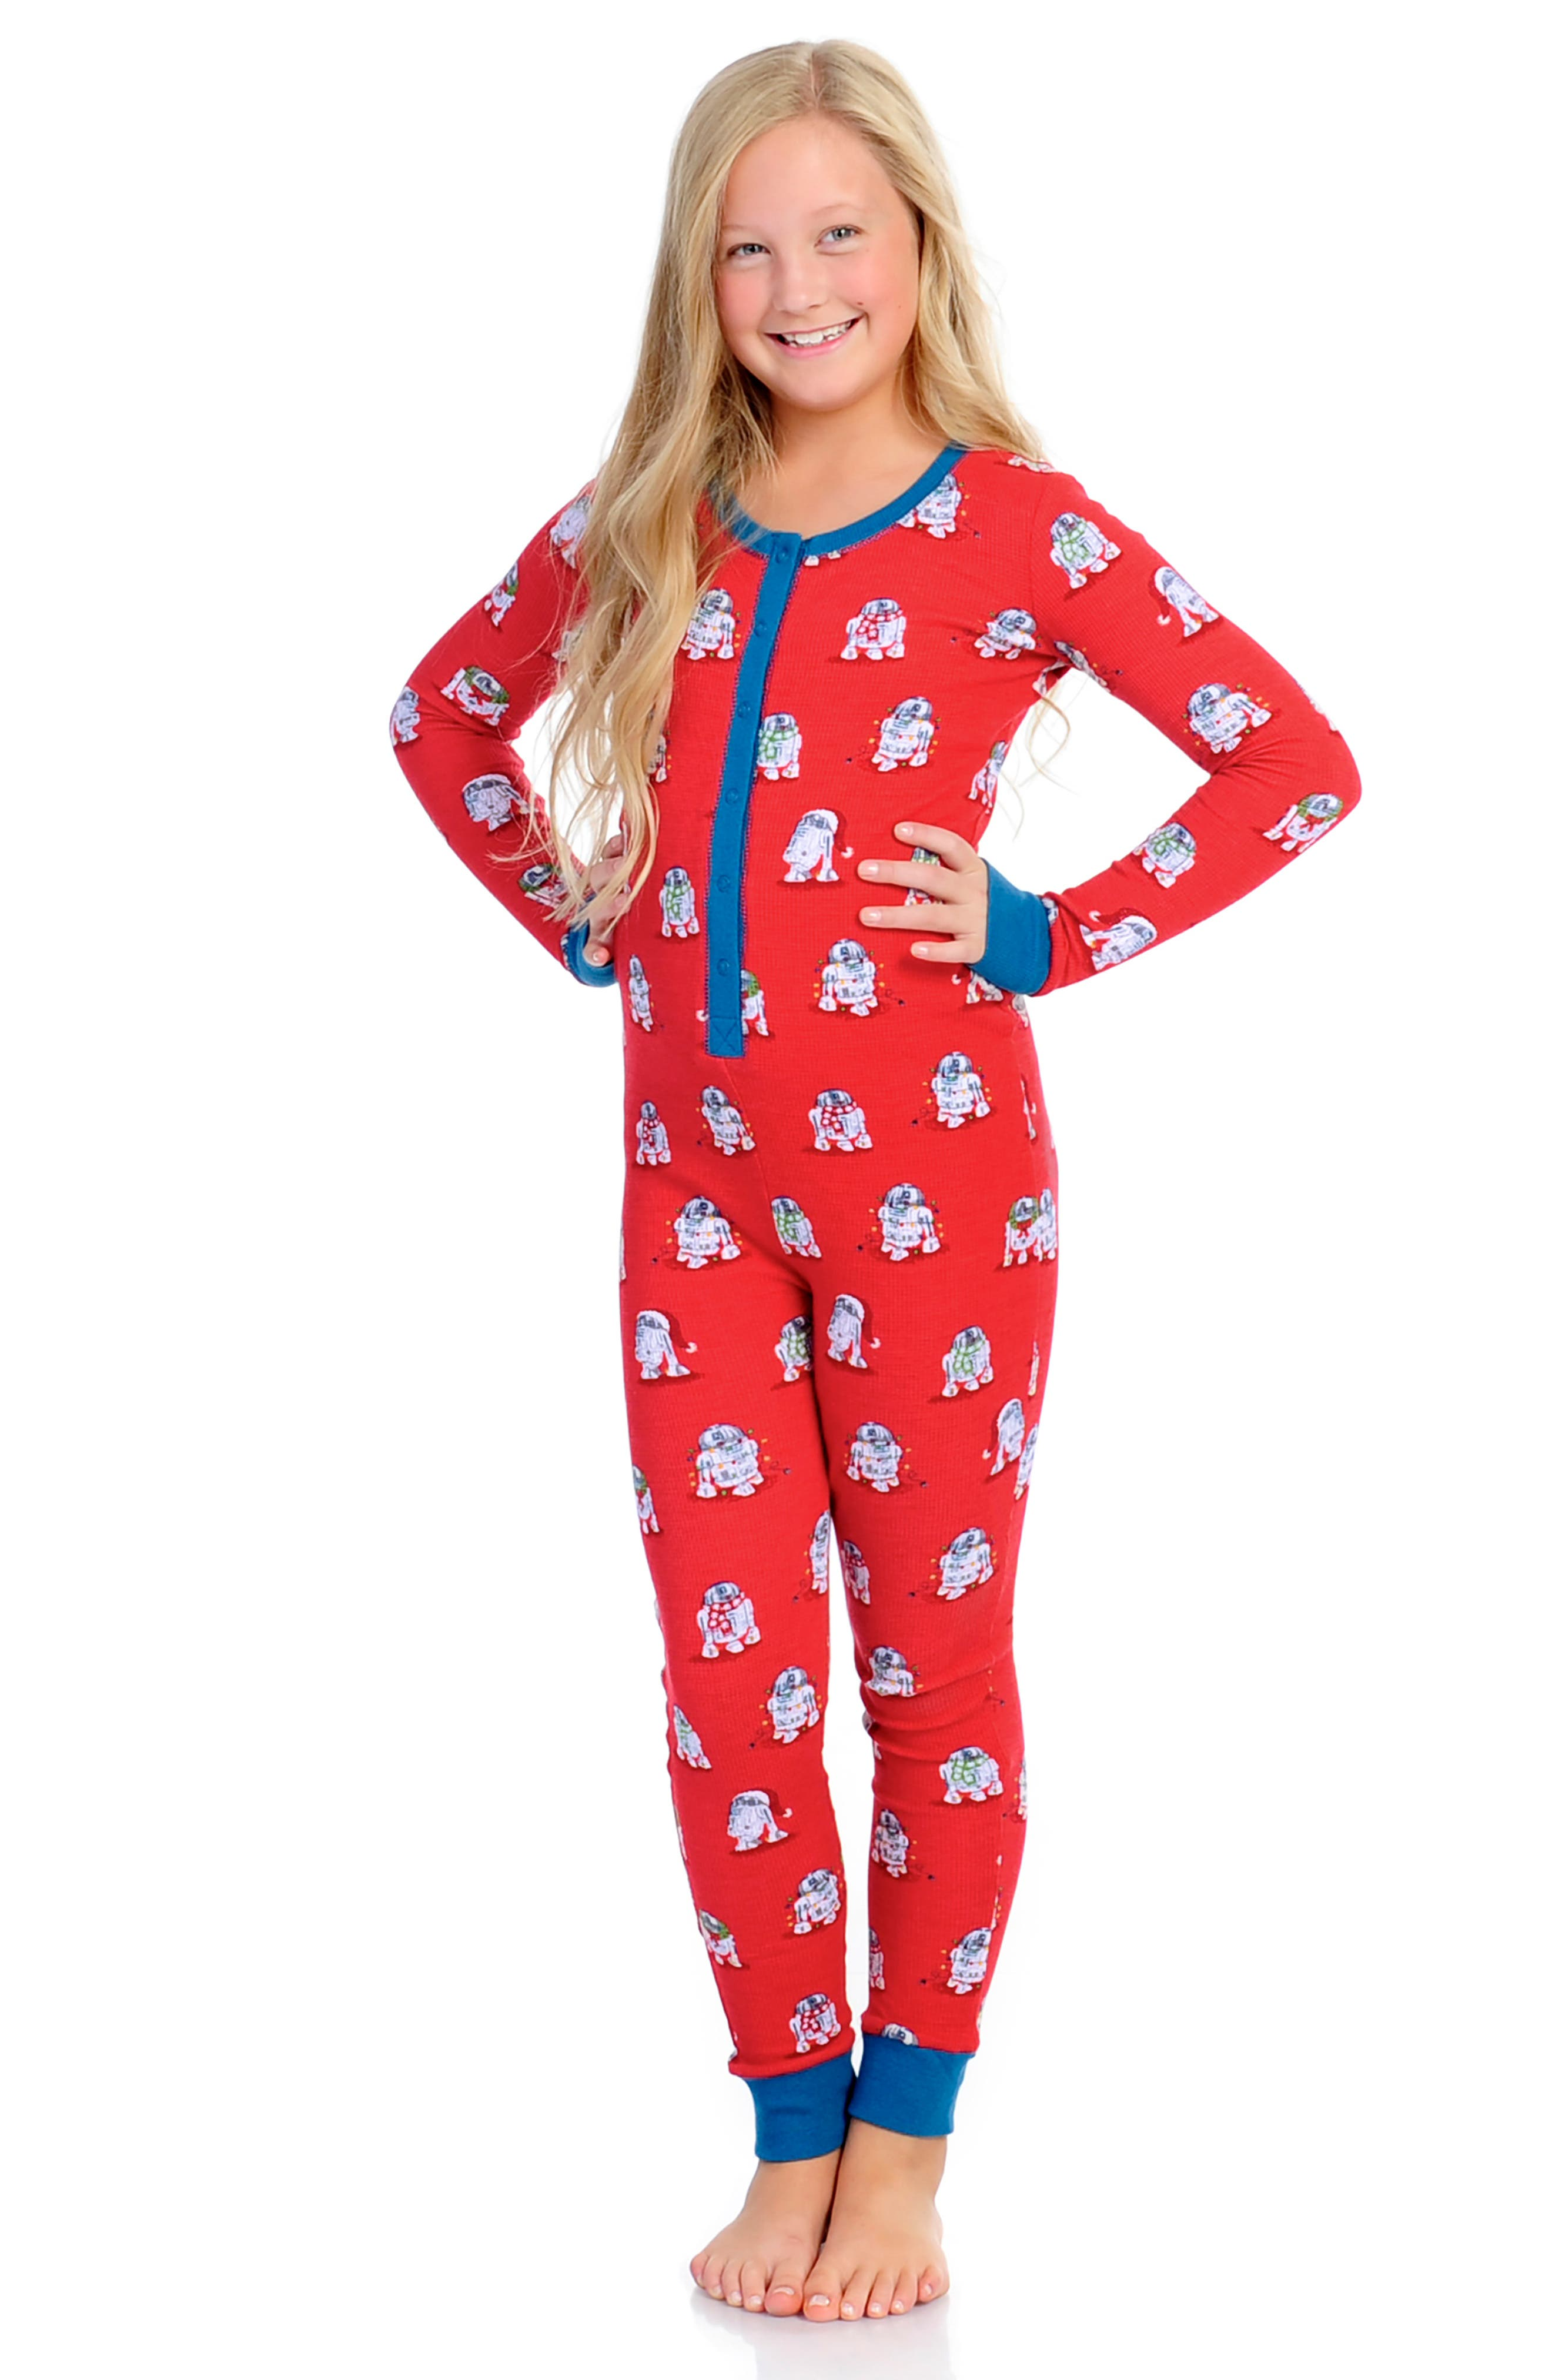 x Star Wars<sup>™</sup> Christmas R2-D2 Fitted One-Piece Pajamas,                             Alternate thumbnail 3, color,                             600